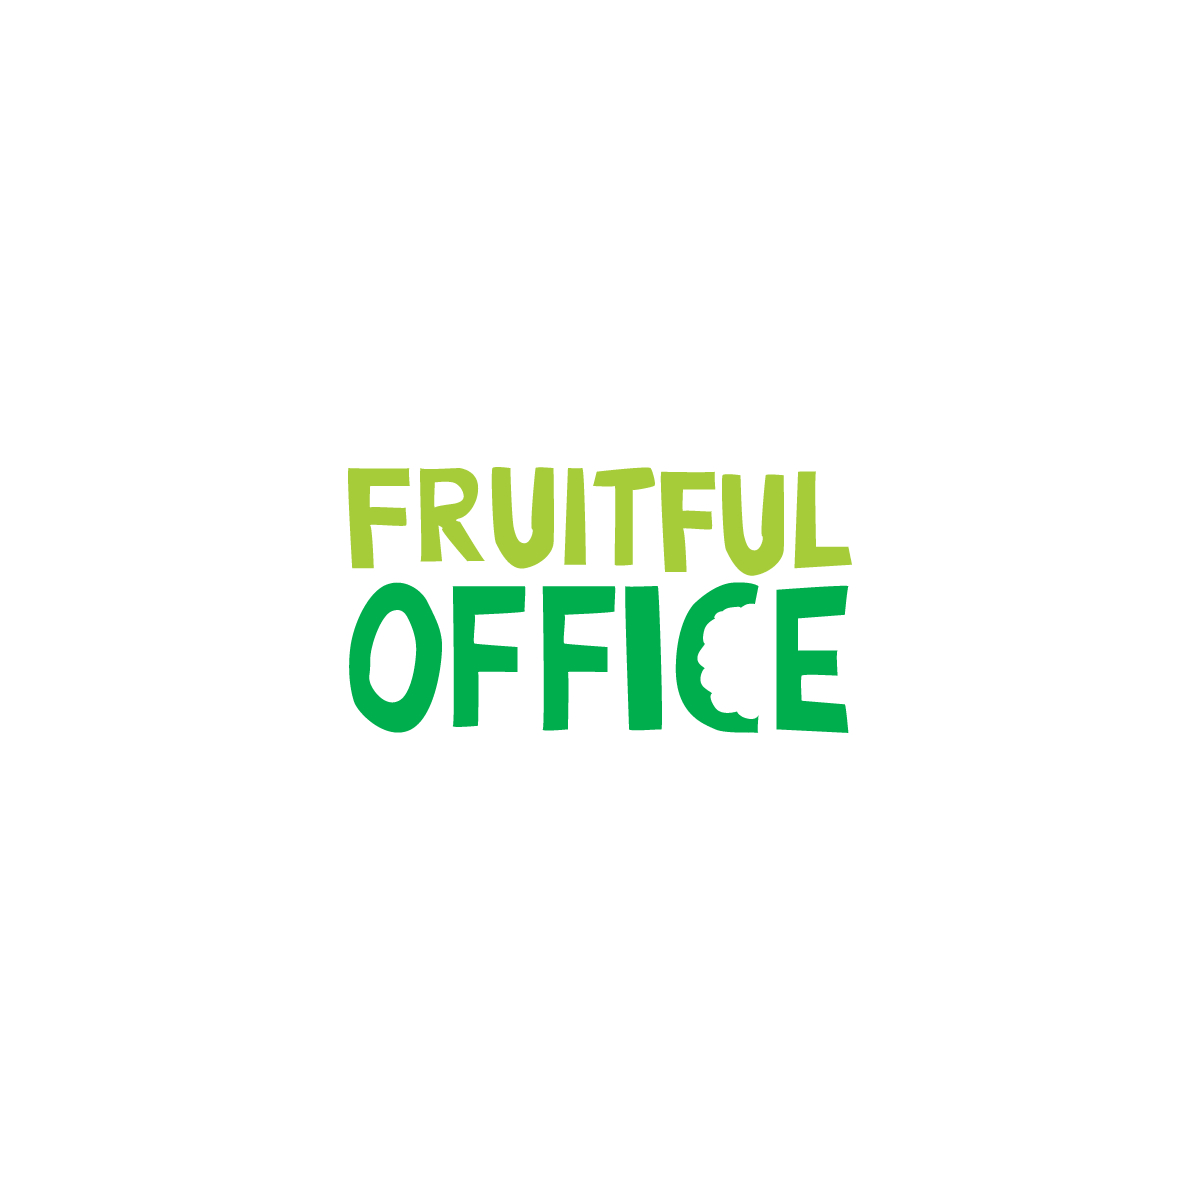 Fruitful Office Benelux